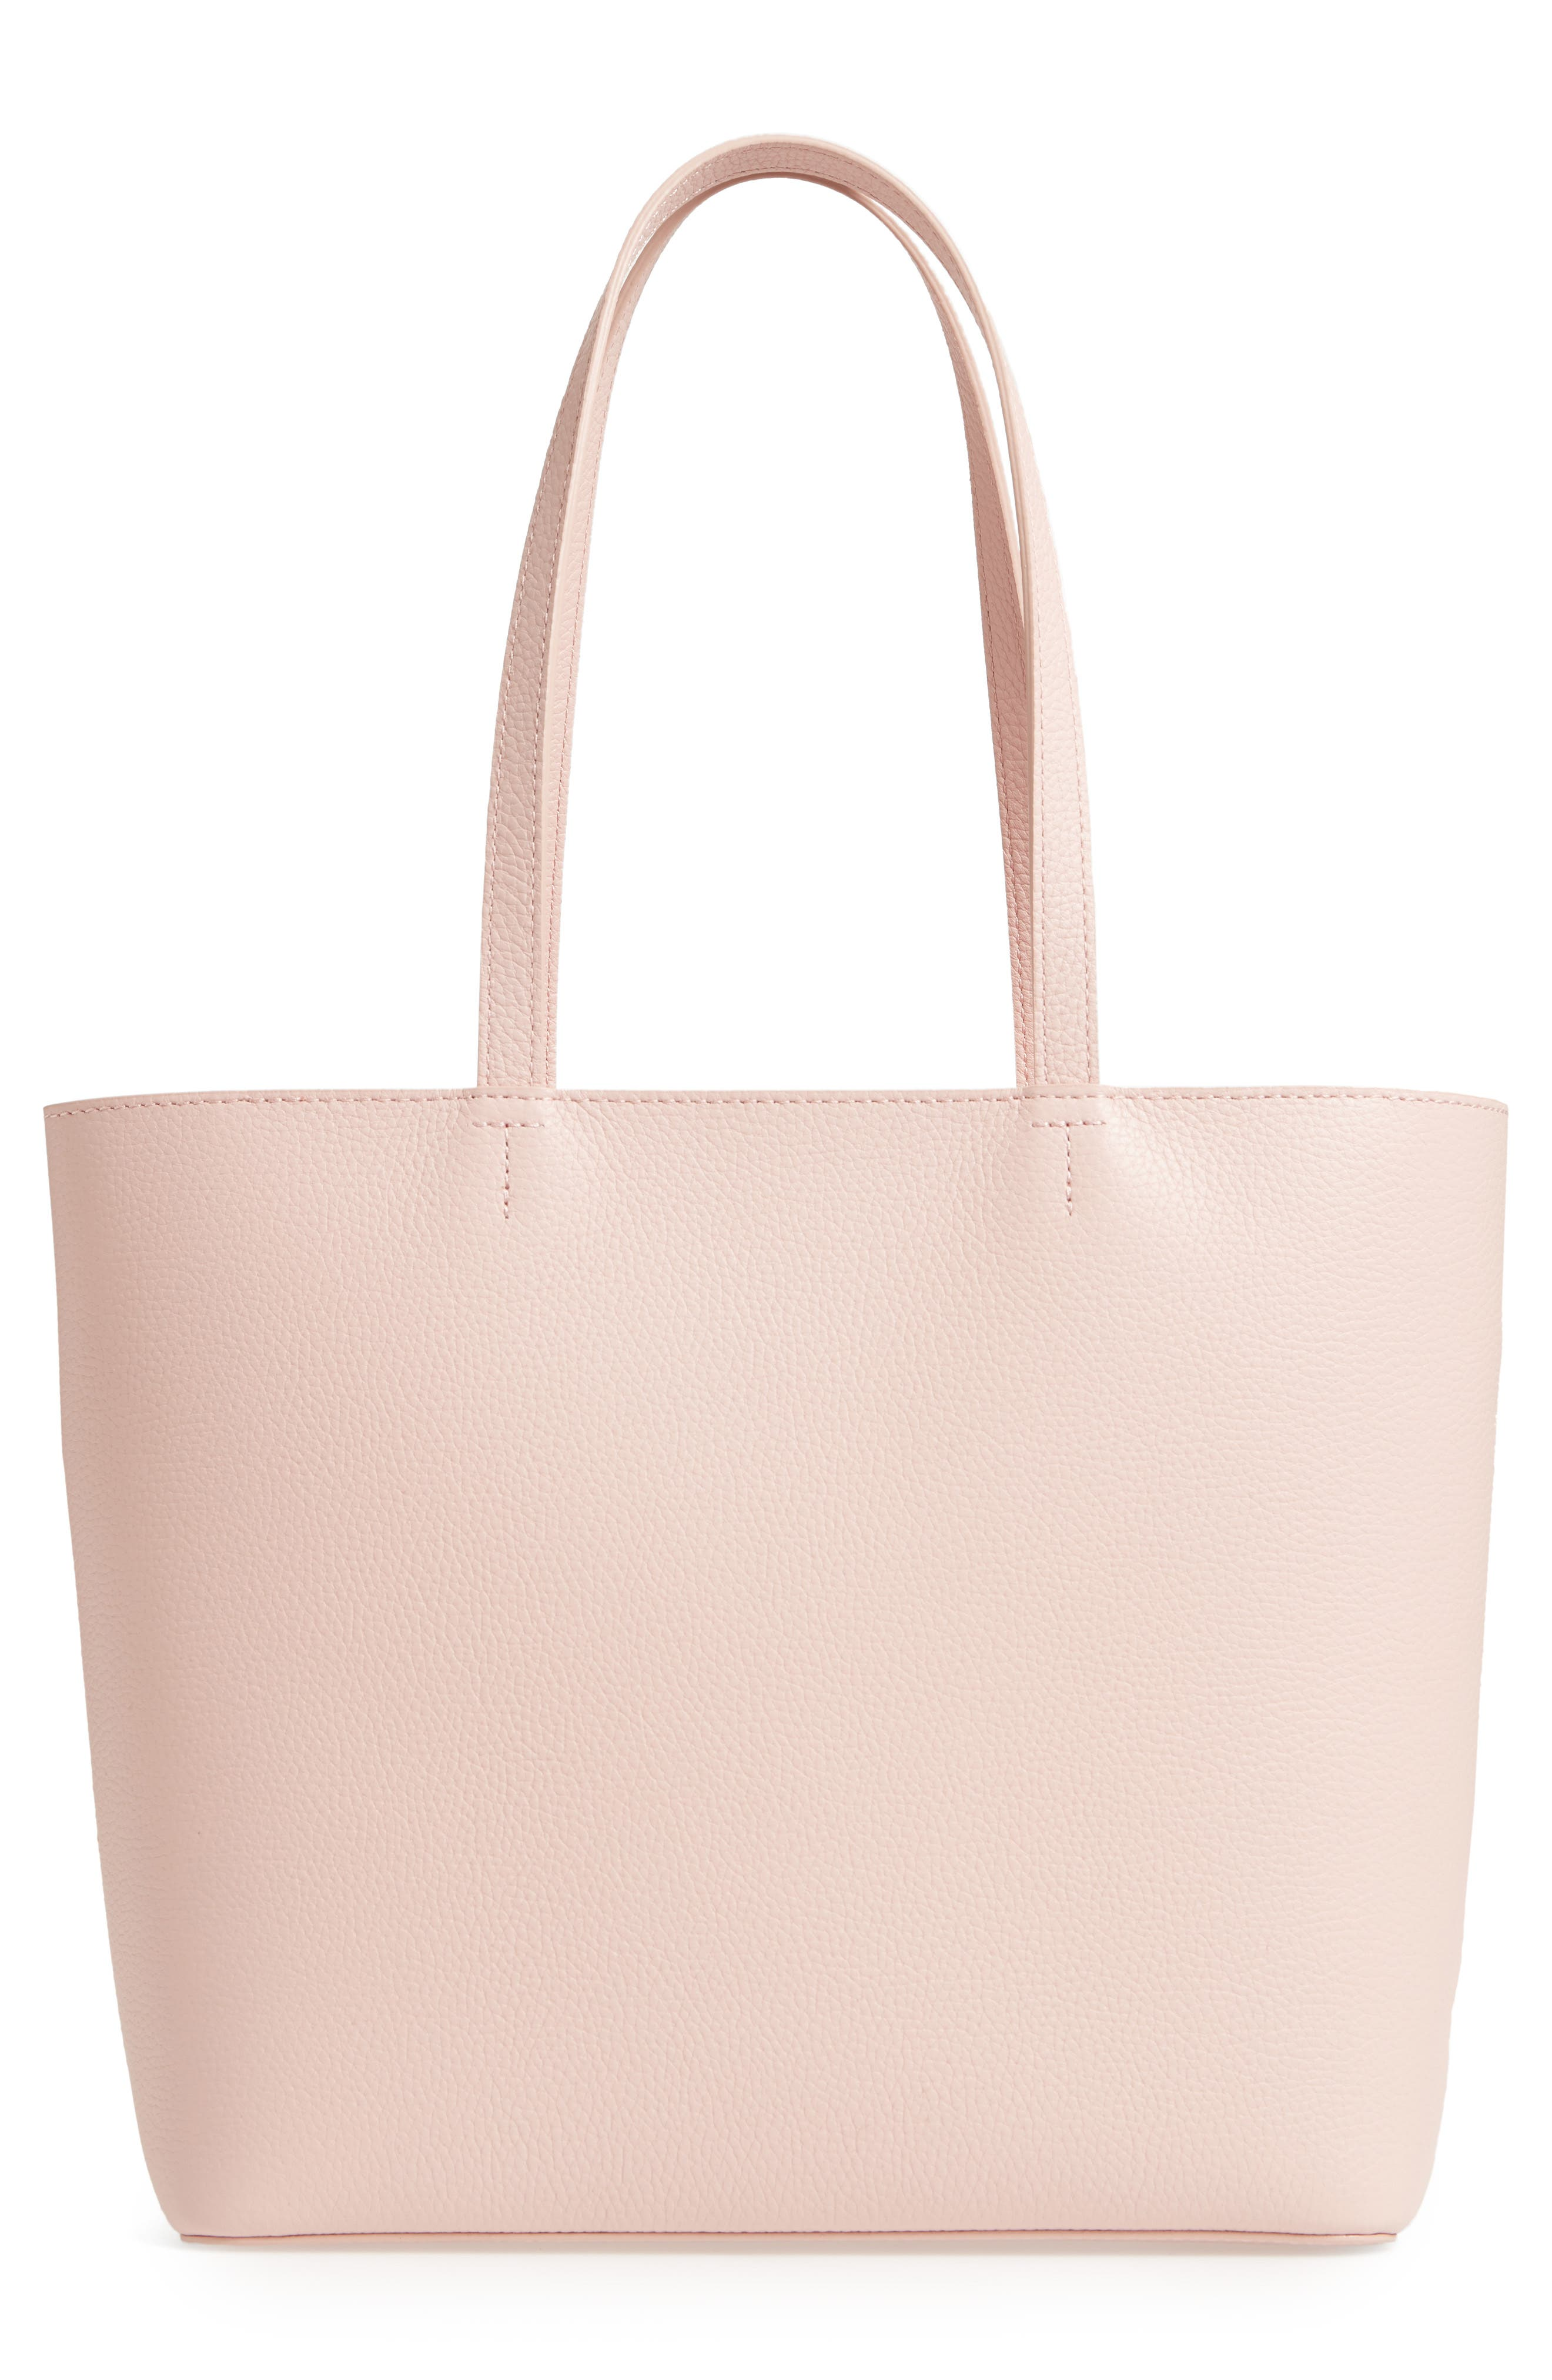 Giant Knot Leather Shopper,                             Alternate thumbnail 3, color,                             Nude Pink